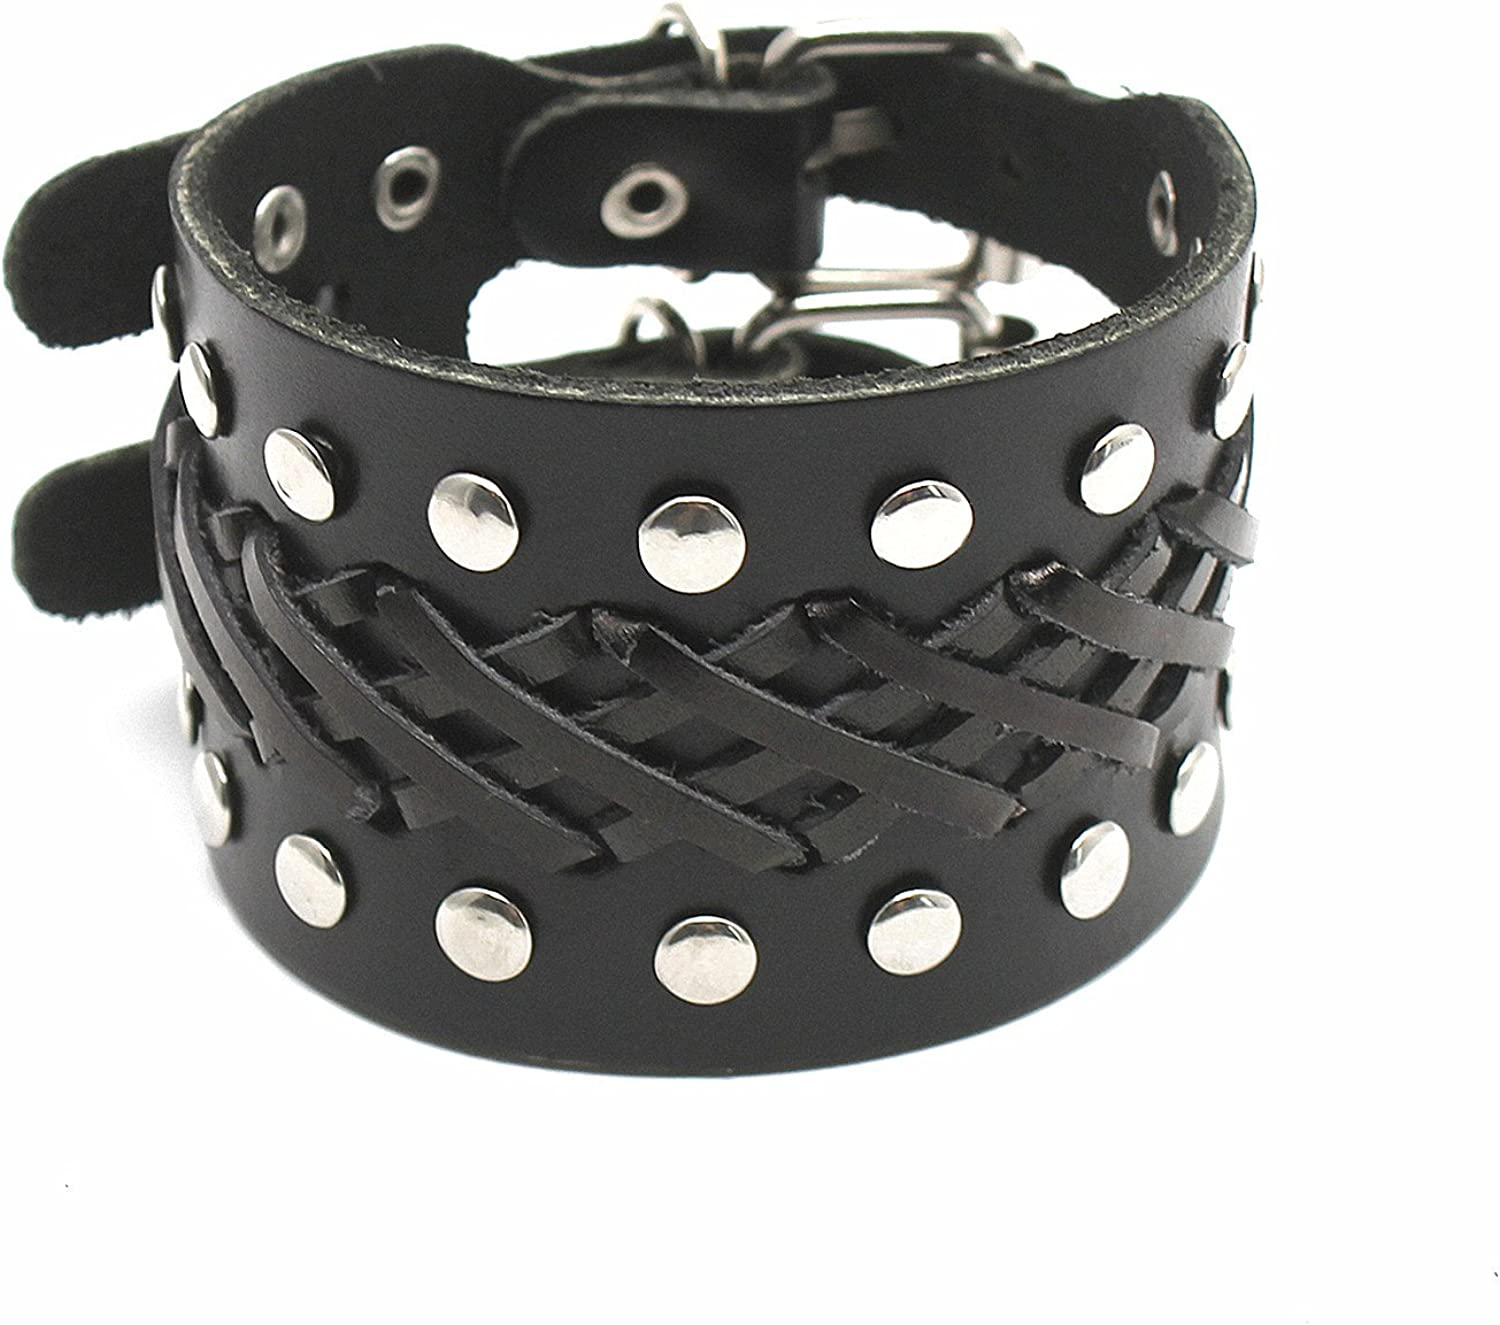 Holattio Mens Cool Wide Punk Rock Genuine Leather Tribe Wristband Cuff Bracelet Bangle Rope Black Brown Opt Available